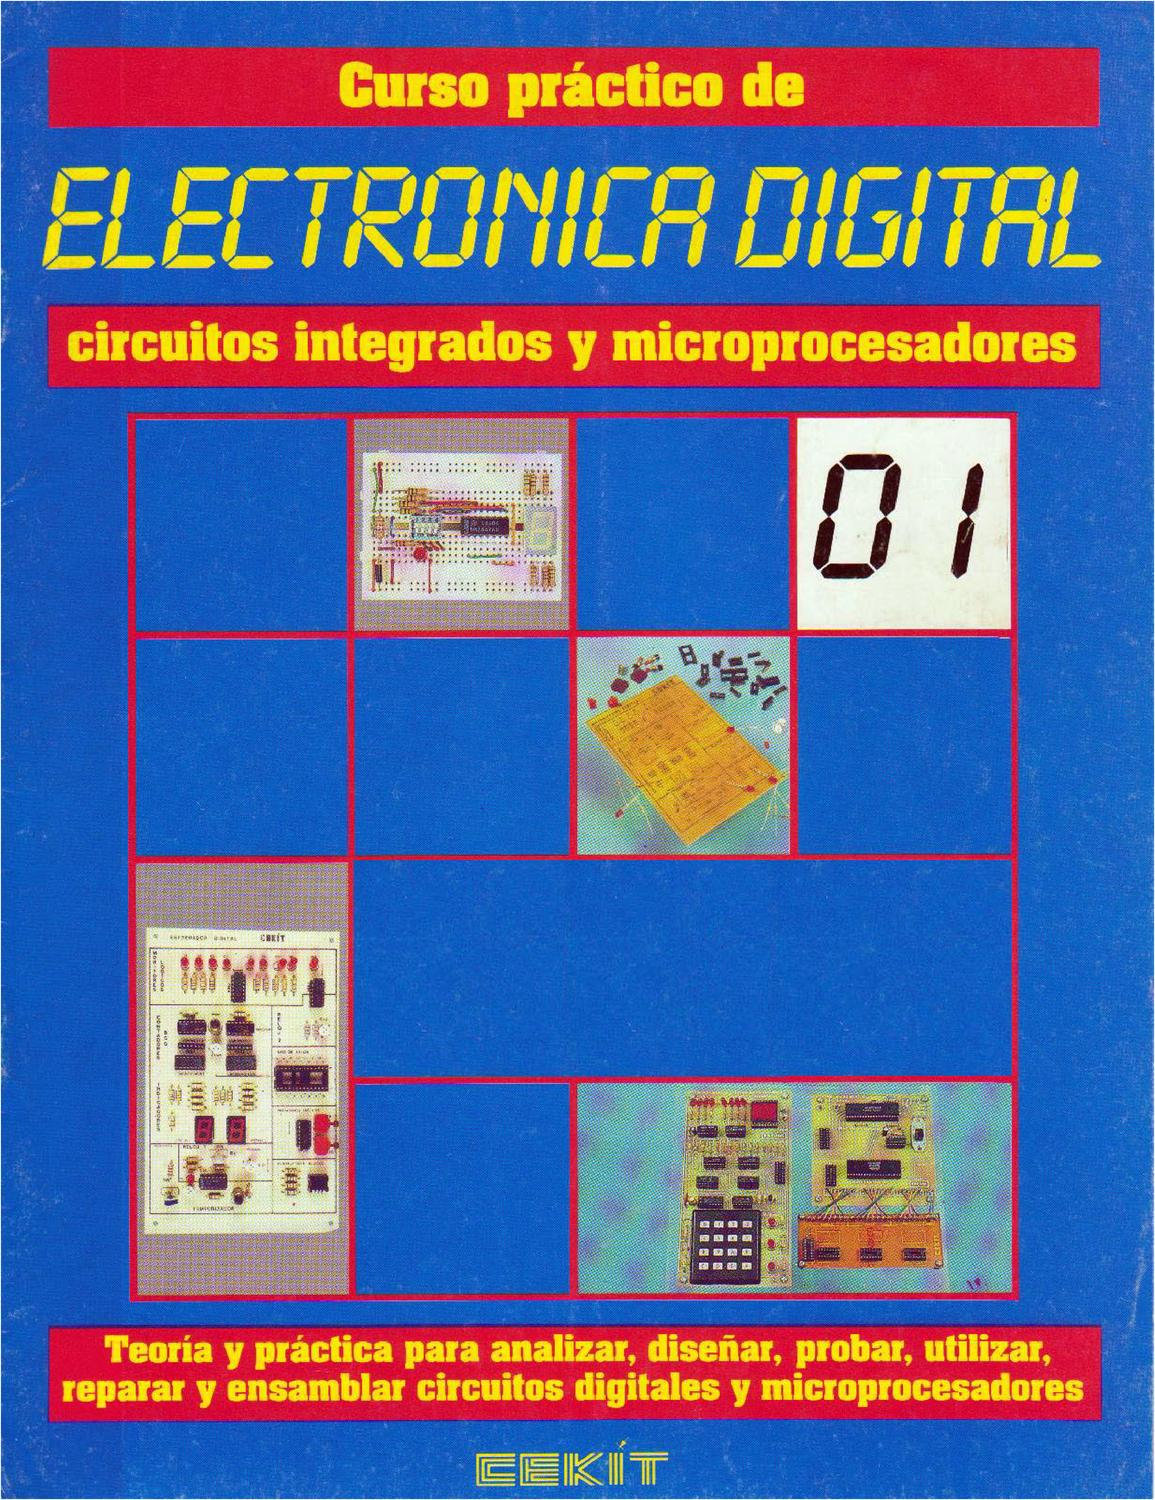 Libros De Electronica Gratis Para Descargar Electronica Digital Vol 1 By William Andres Jojoa Lopez